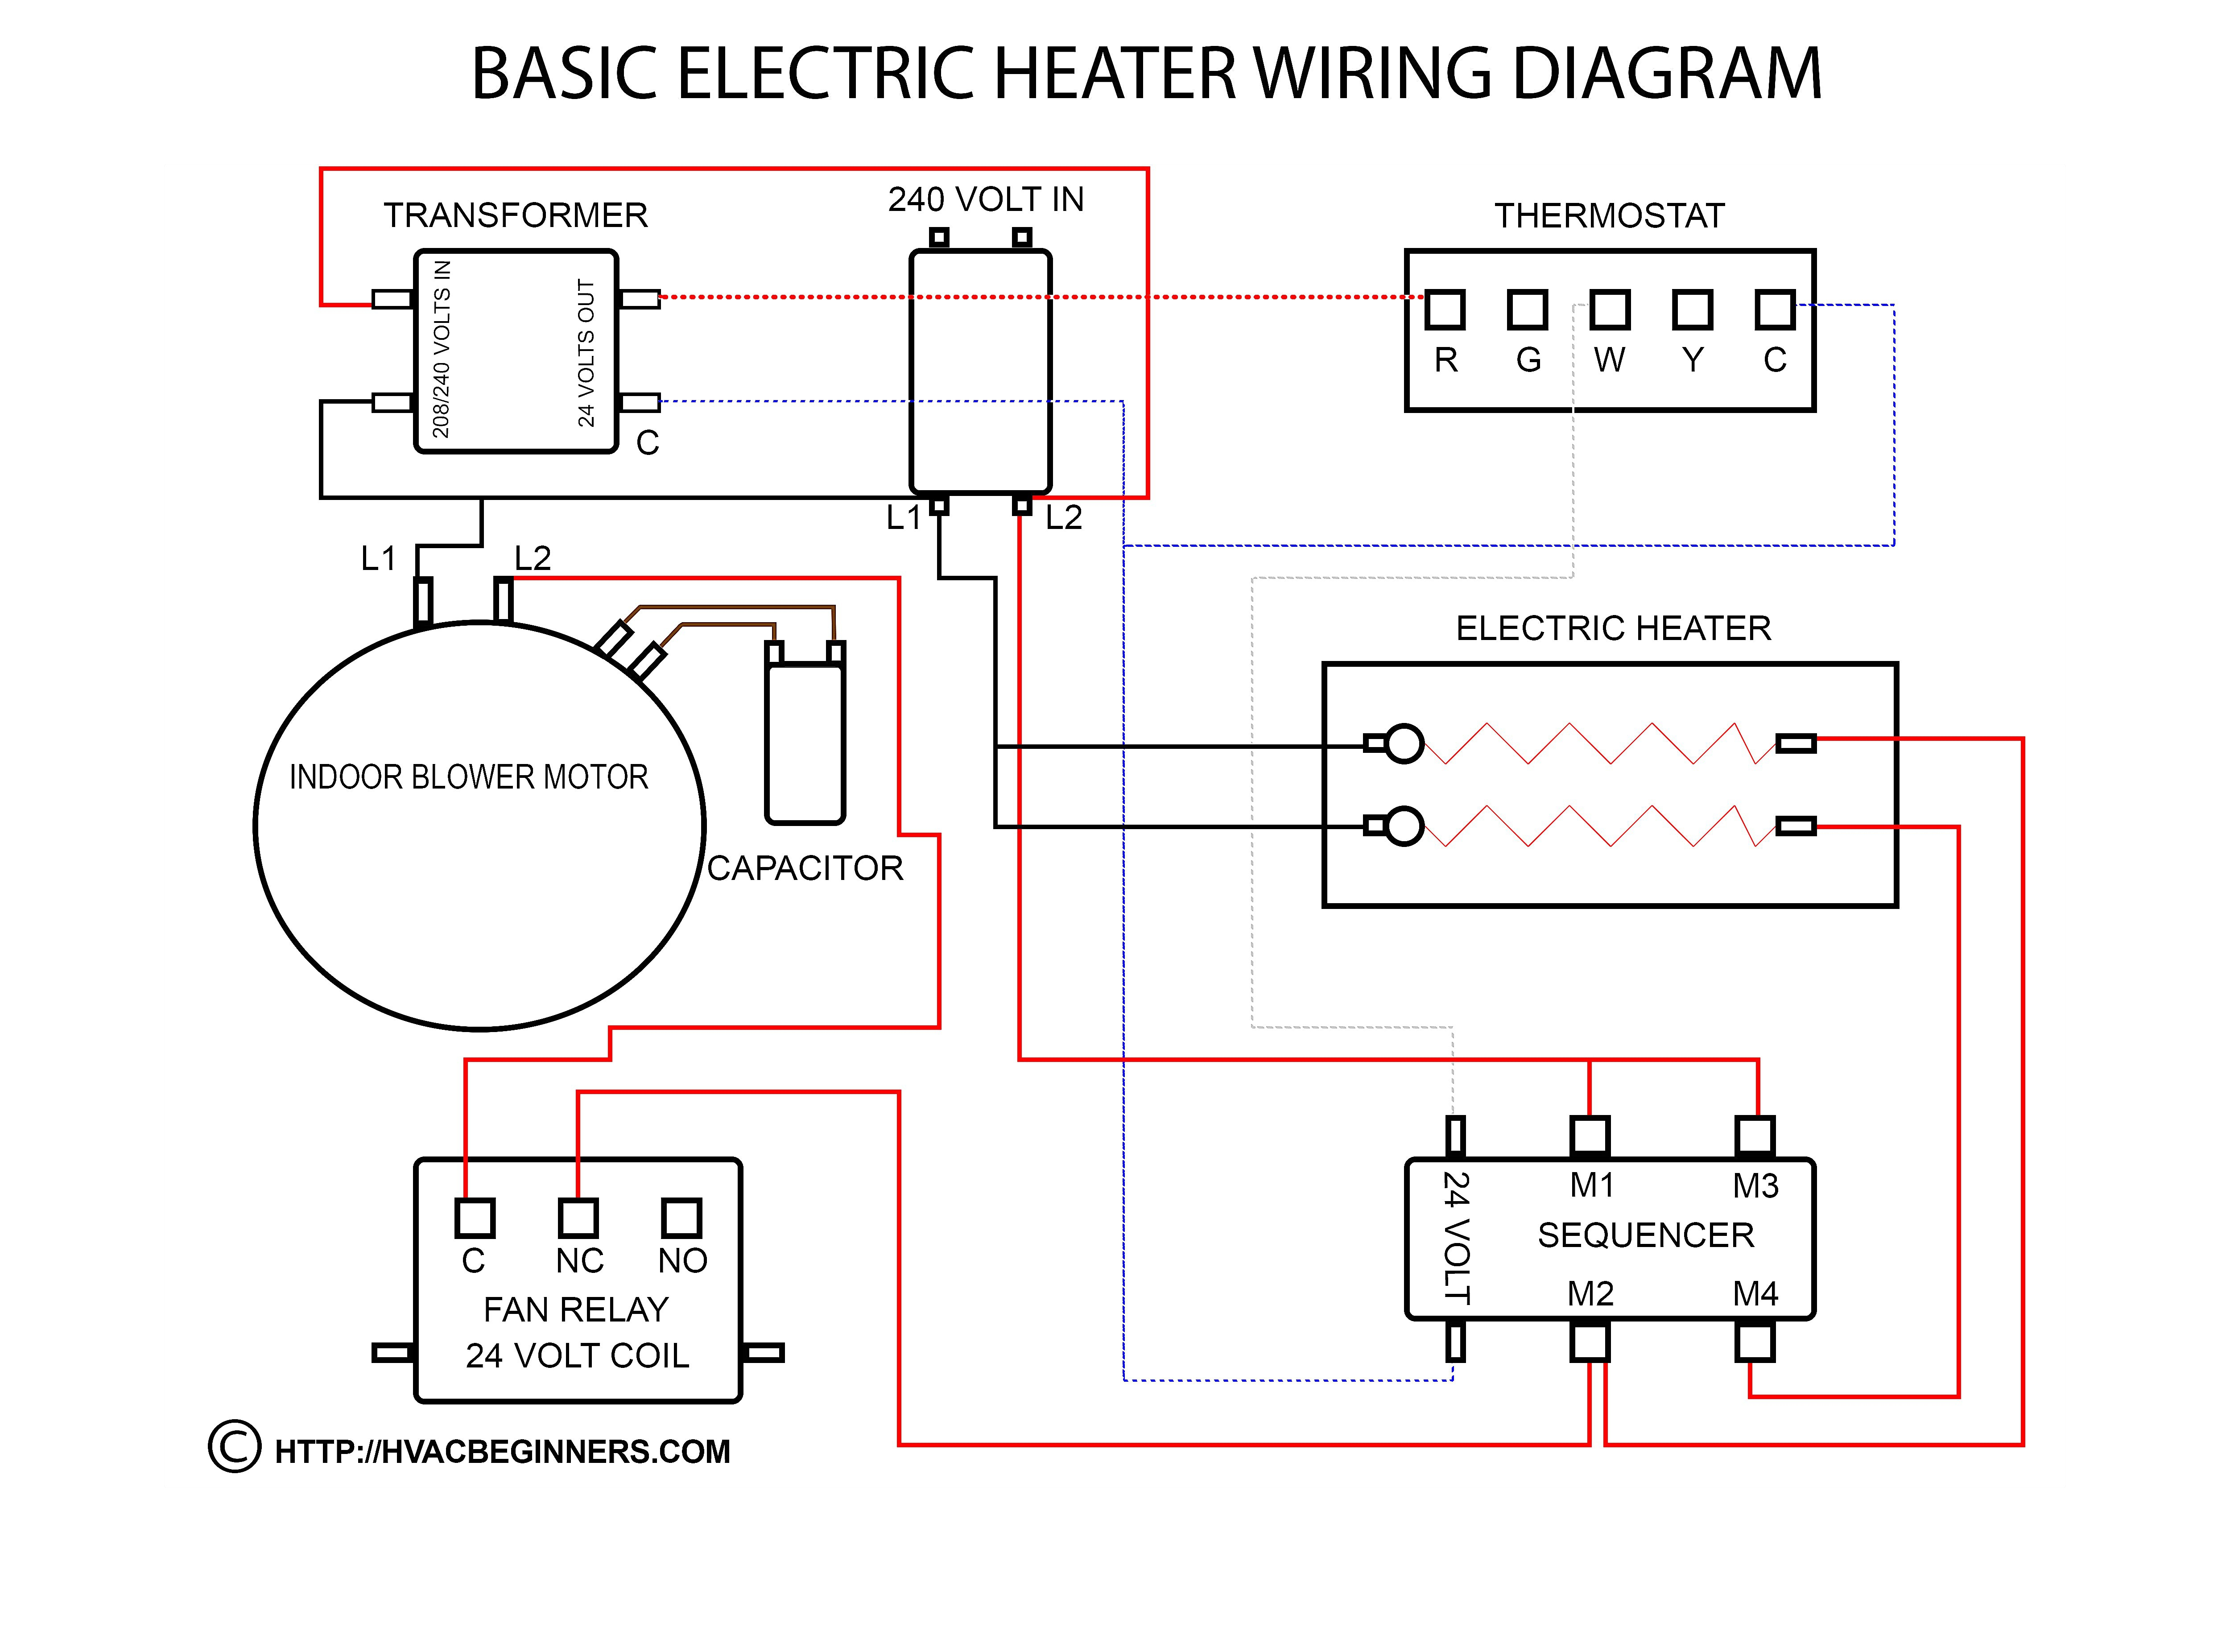 heating and cooling thermostat wiring diagram Download-Furnace Thermostat Wiring Diagram 19-p